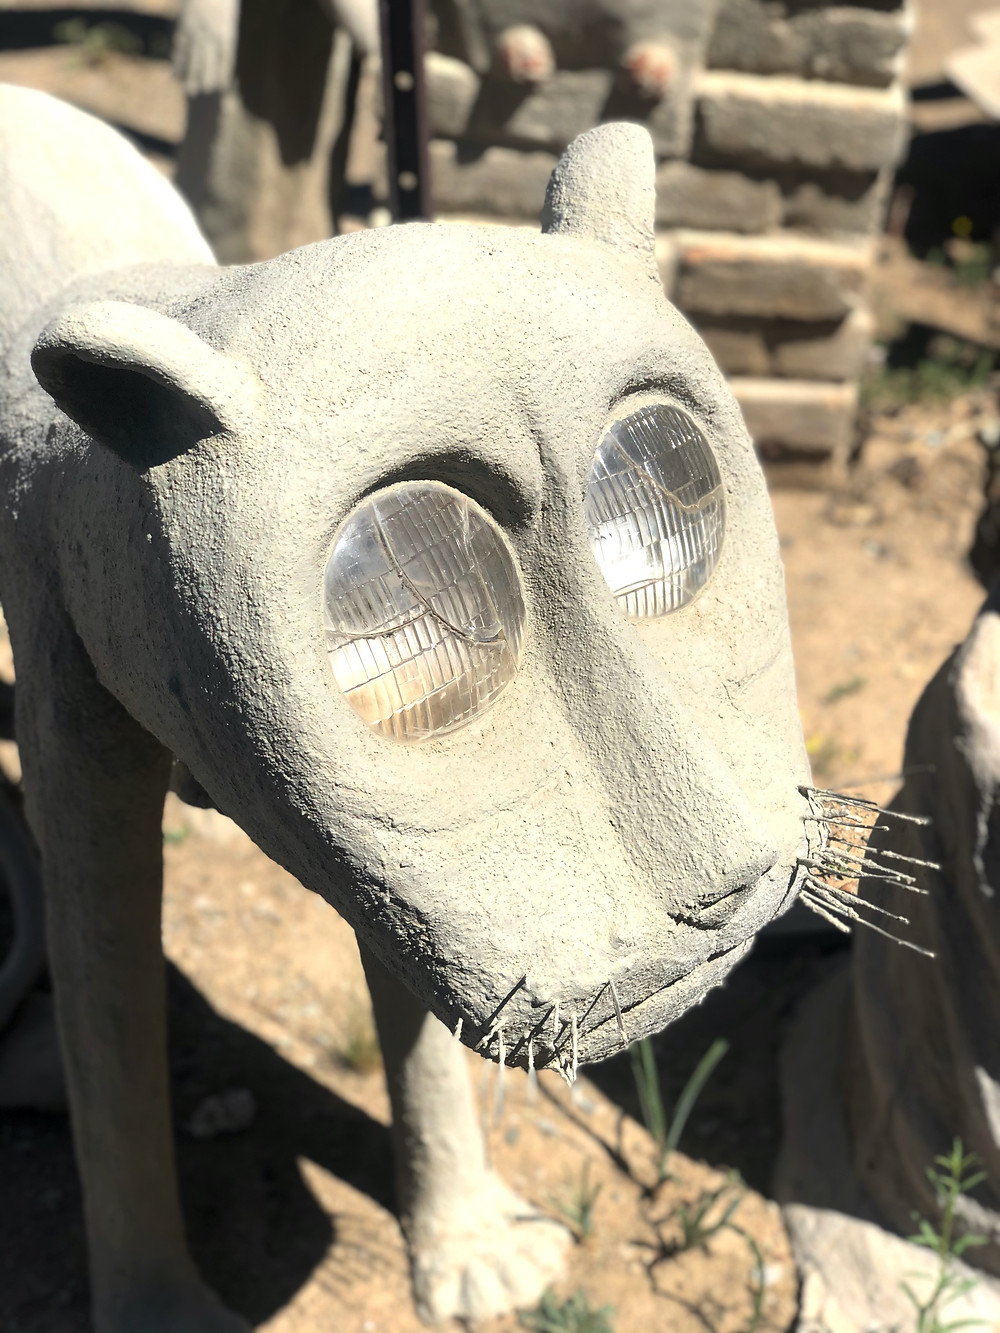 Lion sculpture wire whiskers headlamp eyes cement art